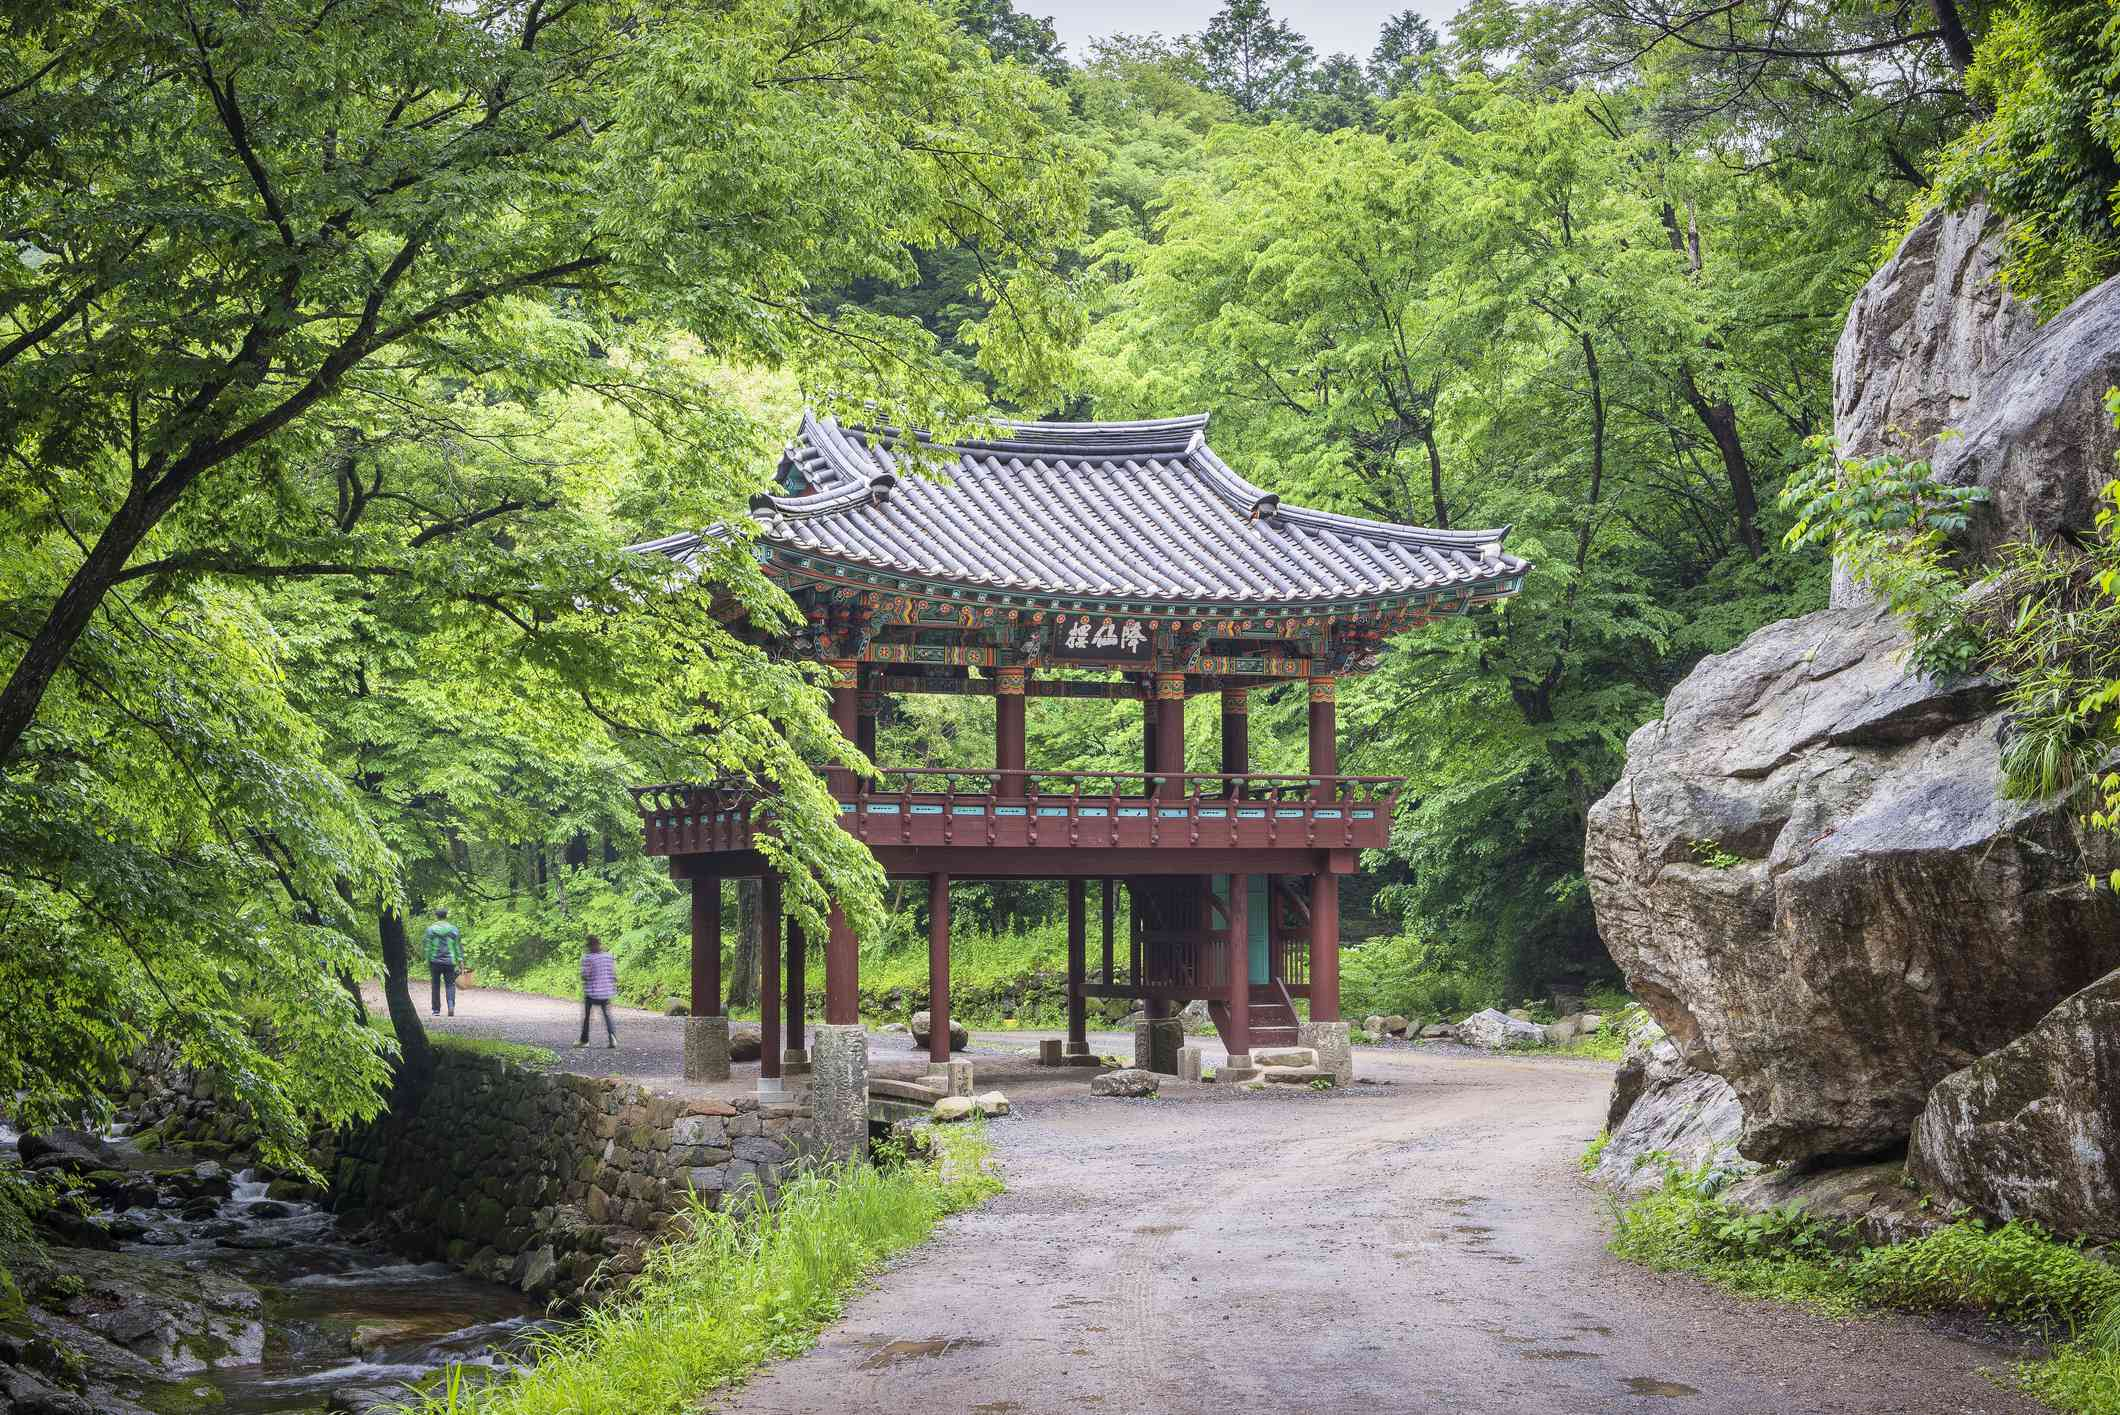 Entry gate and pathway to Seonamsa Temple surrounded by greenery